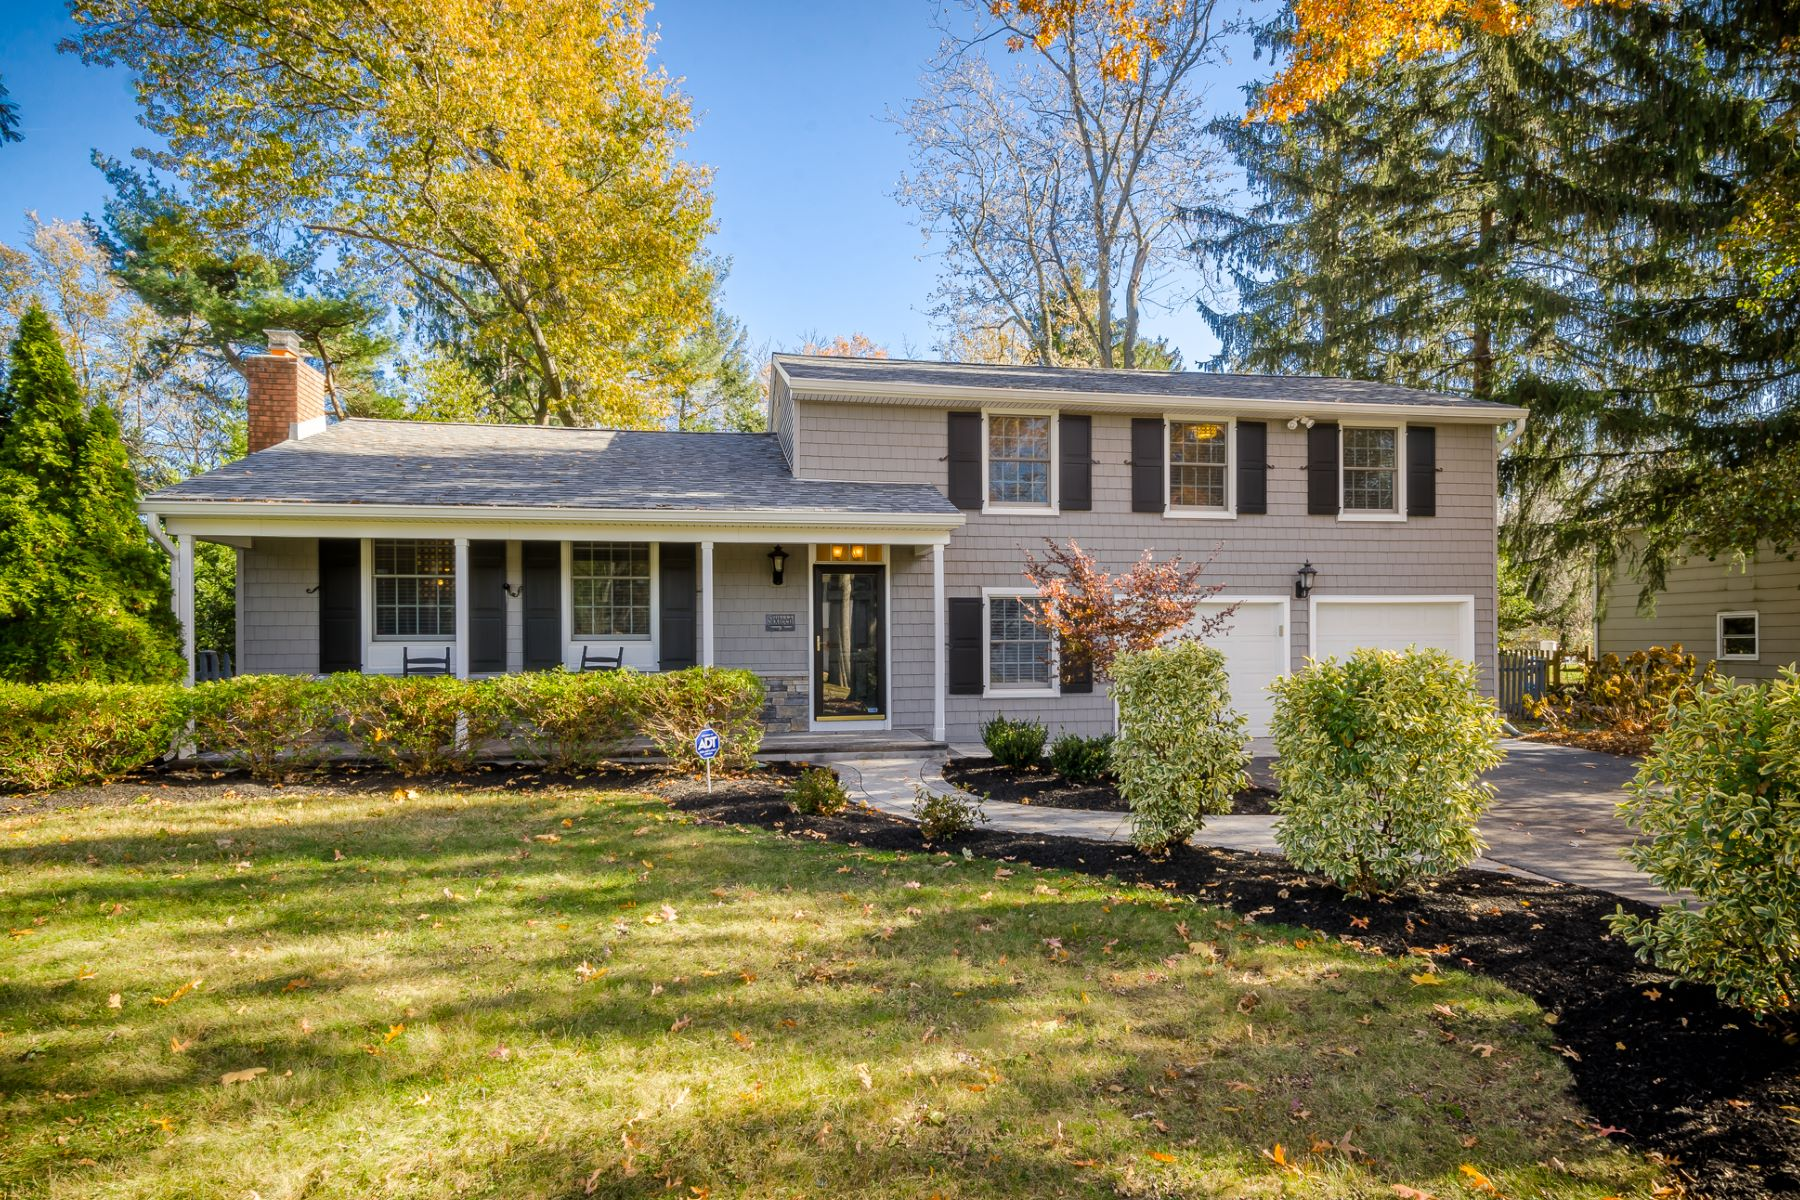 Completely Charming and Up-to-Date in Cranbury 16 Ryan Road, Cranbury, New Jersey 08512 Vereinigte Staaten